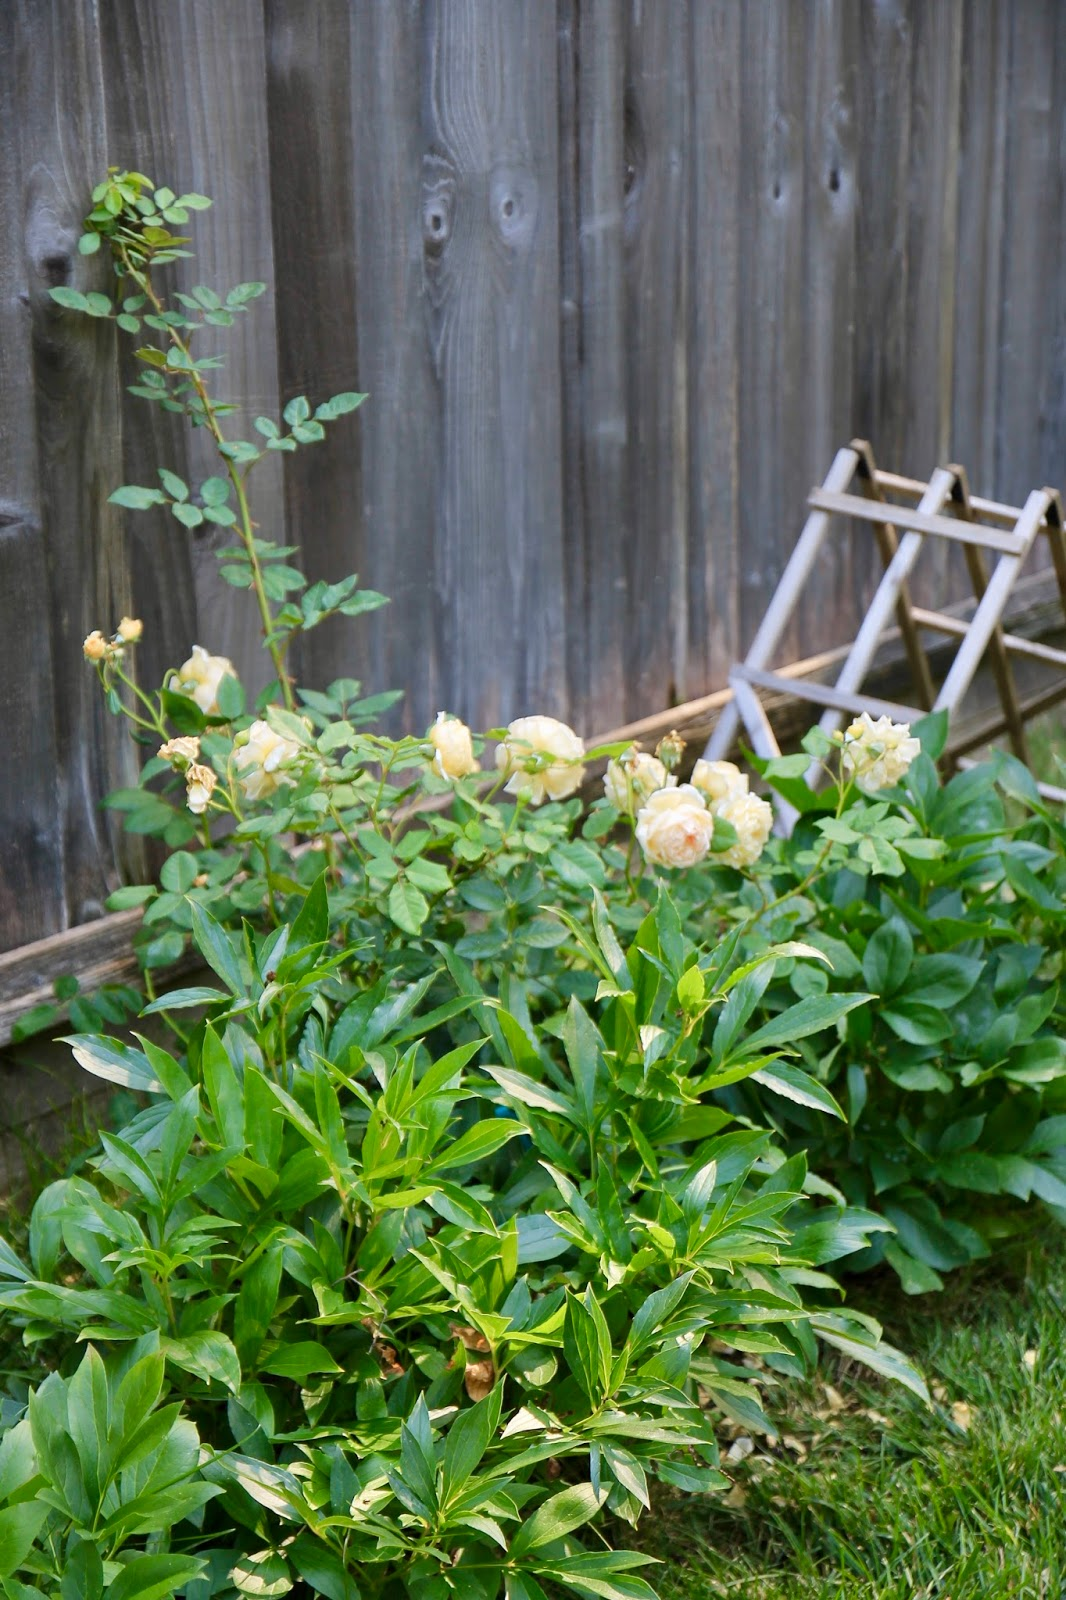 jenny steffens hobick our garden tour summer i ve put in some new climbing garden roses that i m hoping will take over this fence and perfume the entire yard